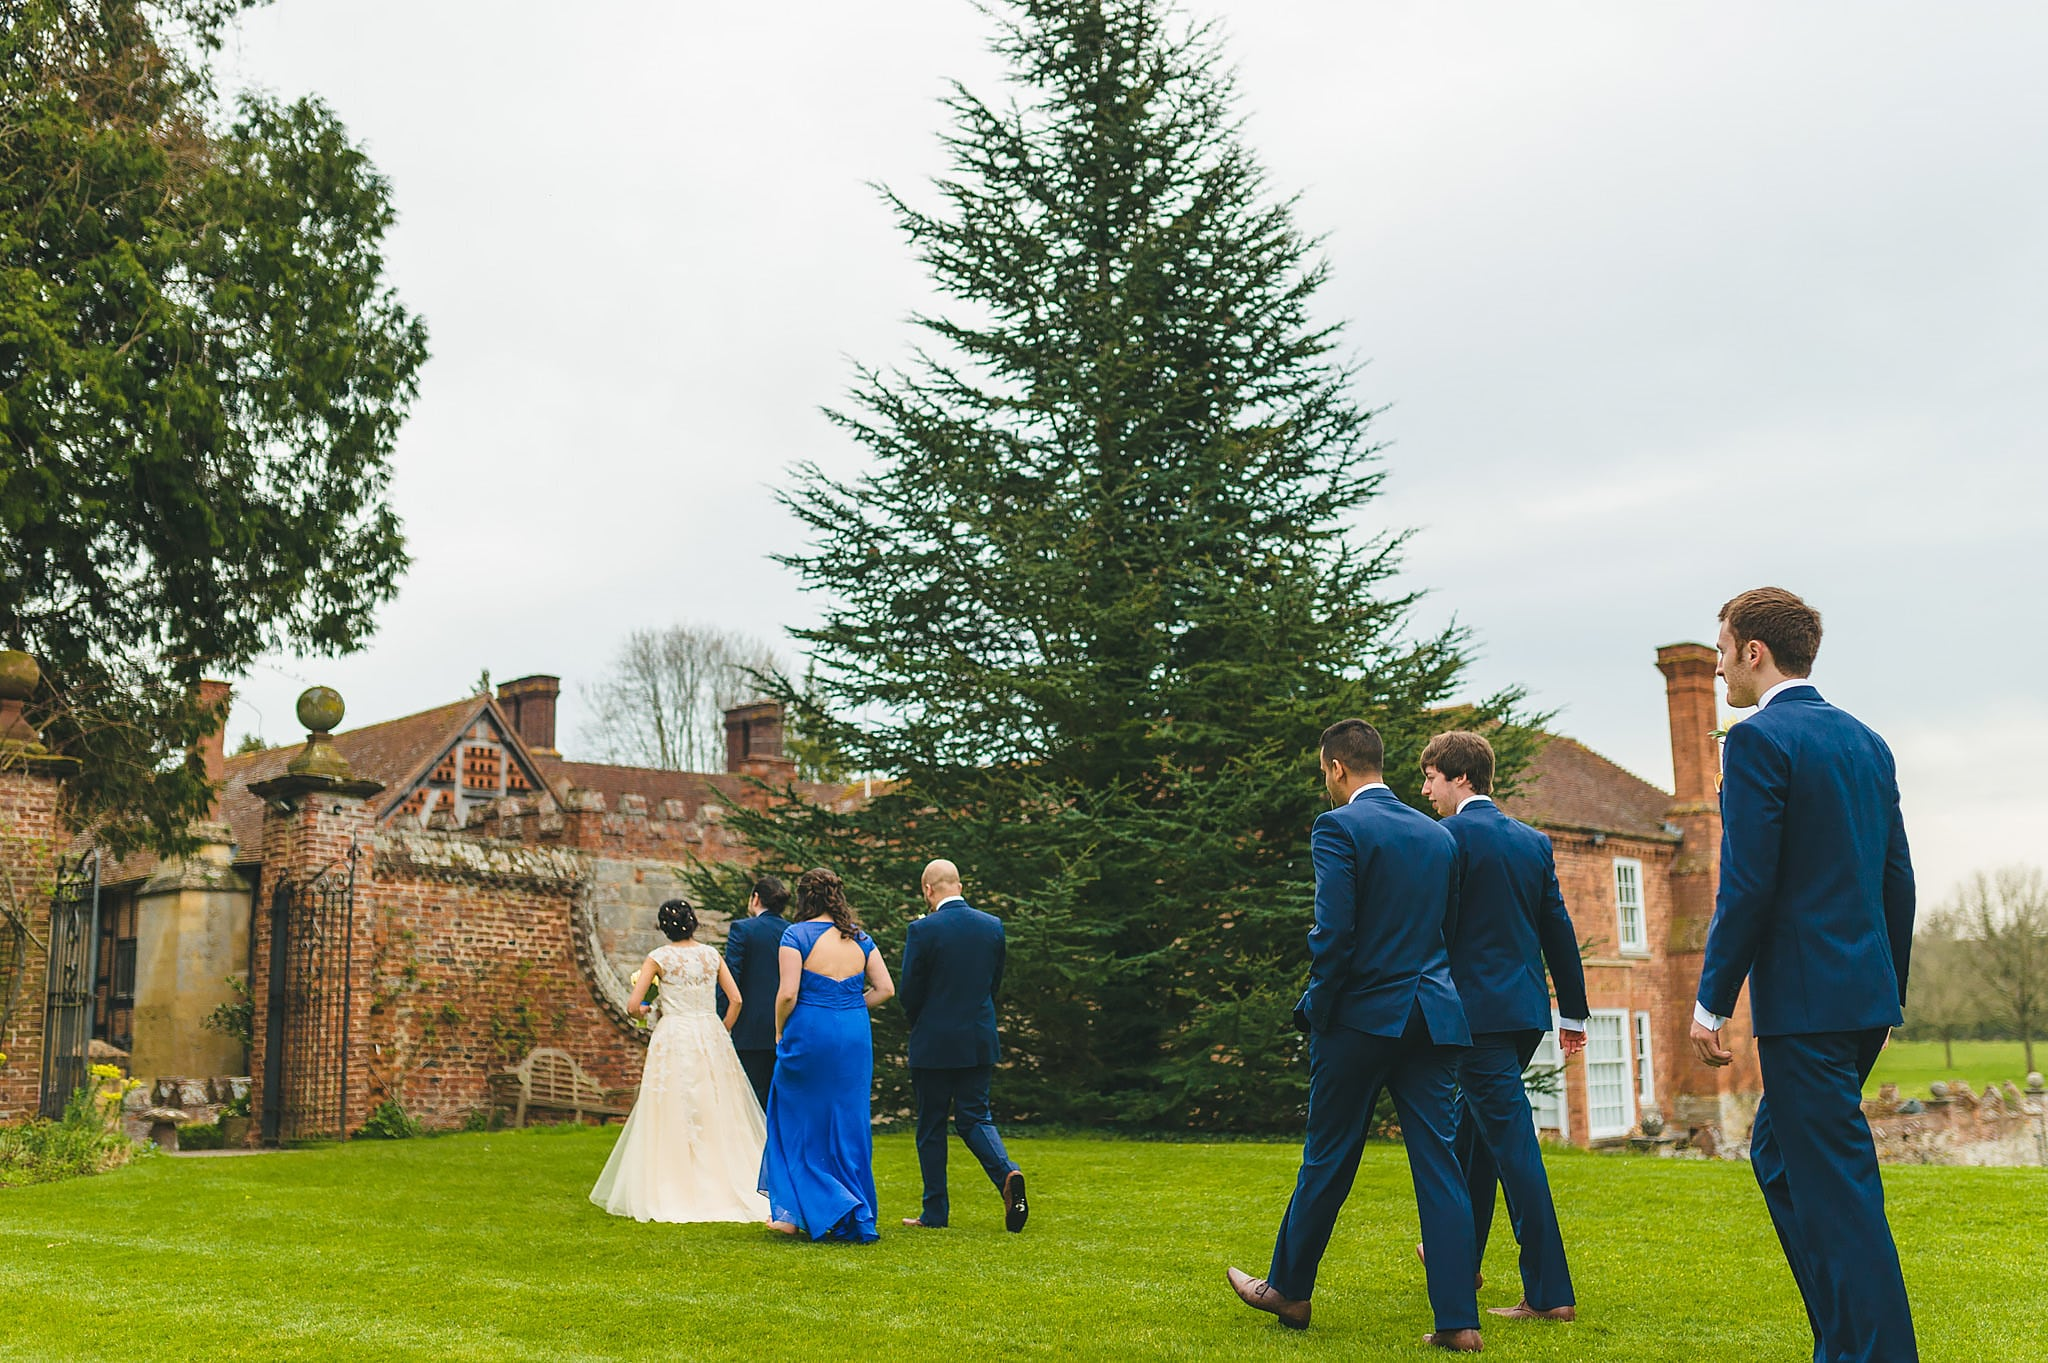 birtsmorton court wedding 66 - Sheena + Lee | Birtsmorton Court Wedding